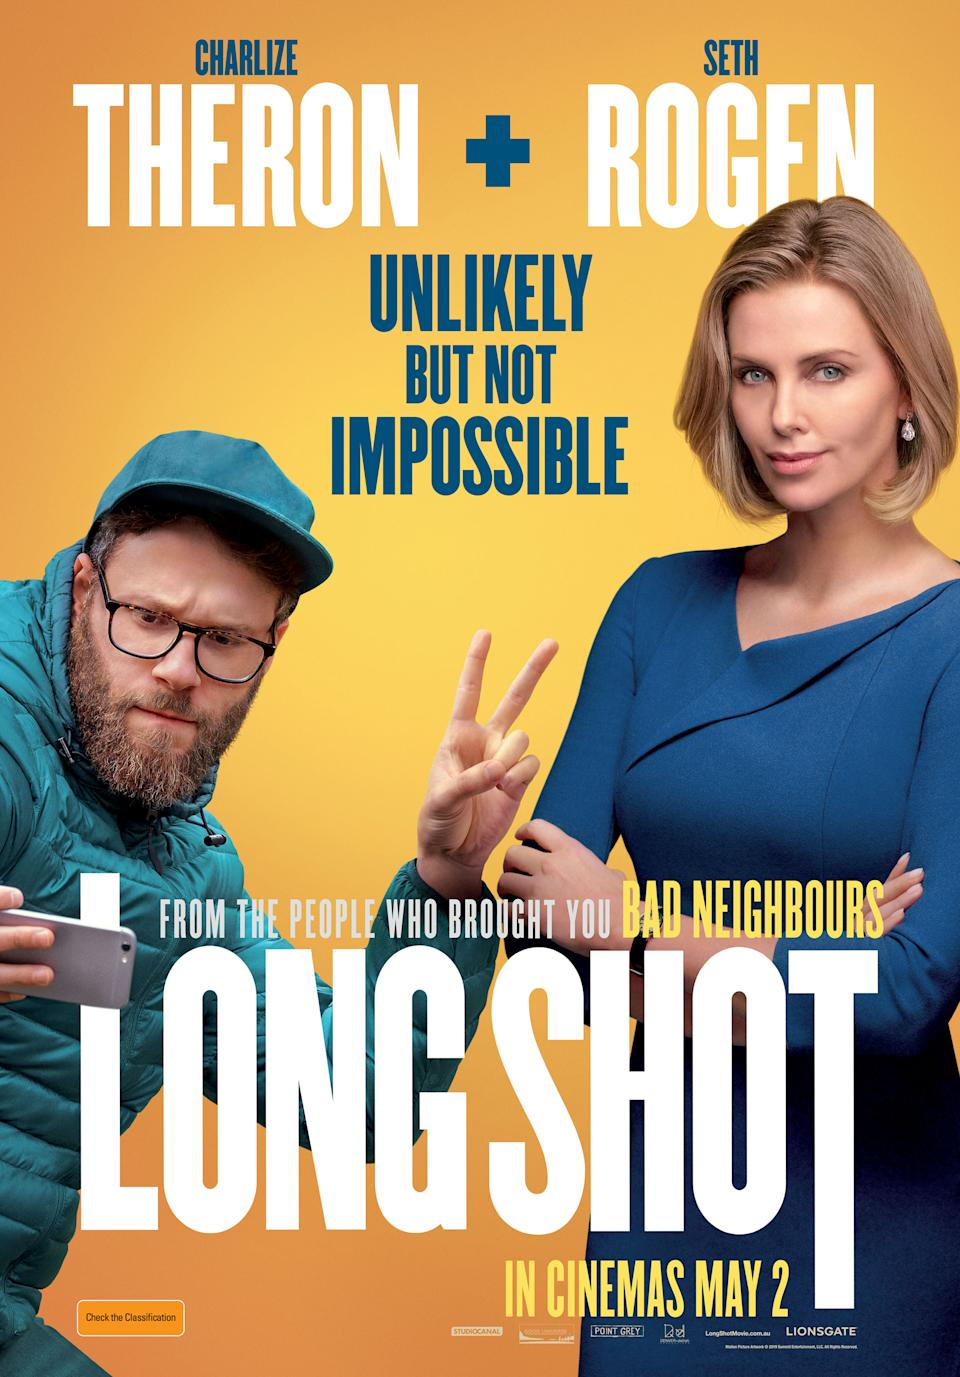 Charlize Theron played an ambitious politician in this raucous comedy. (Lionsgate)